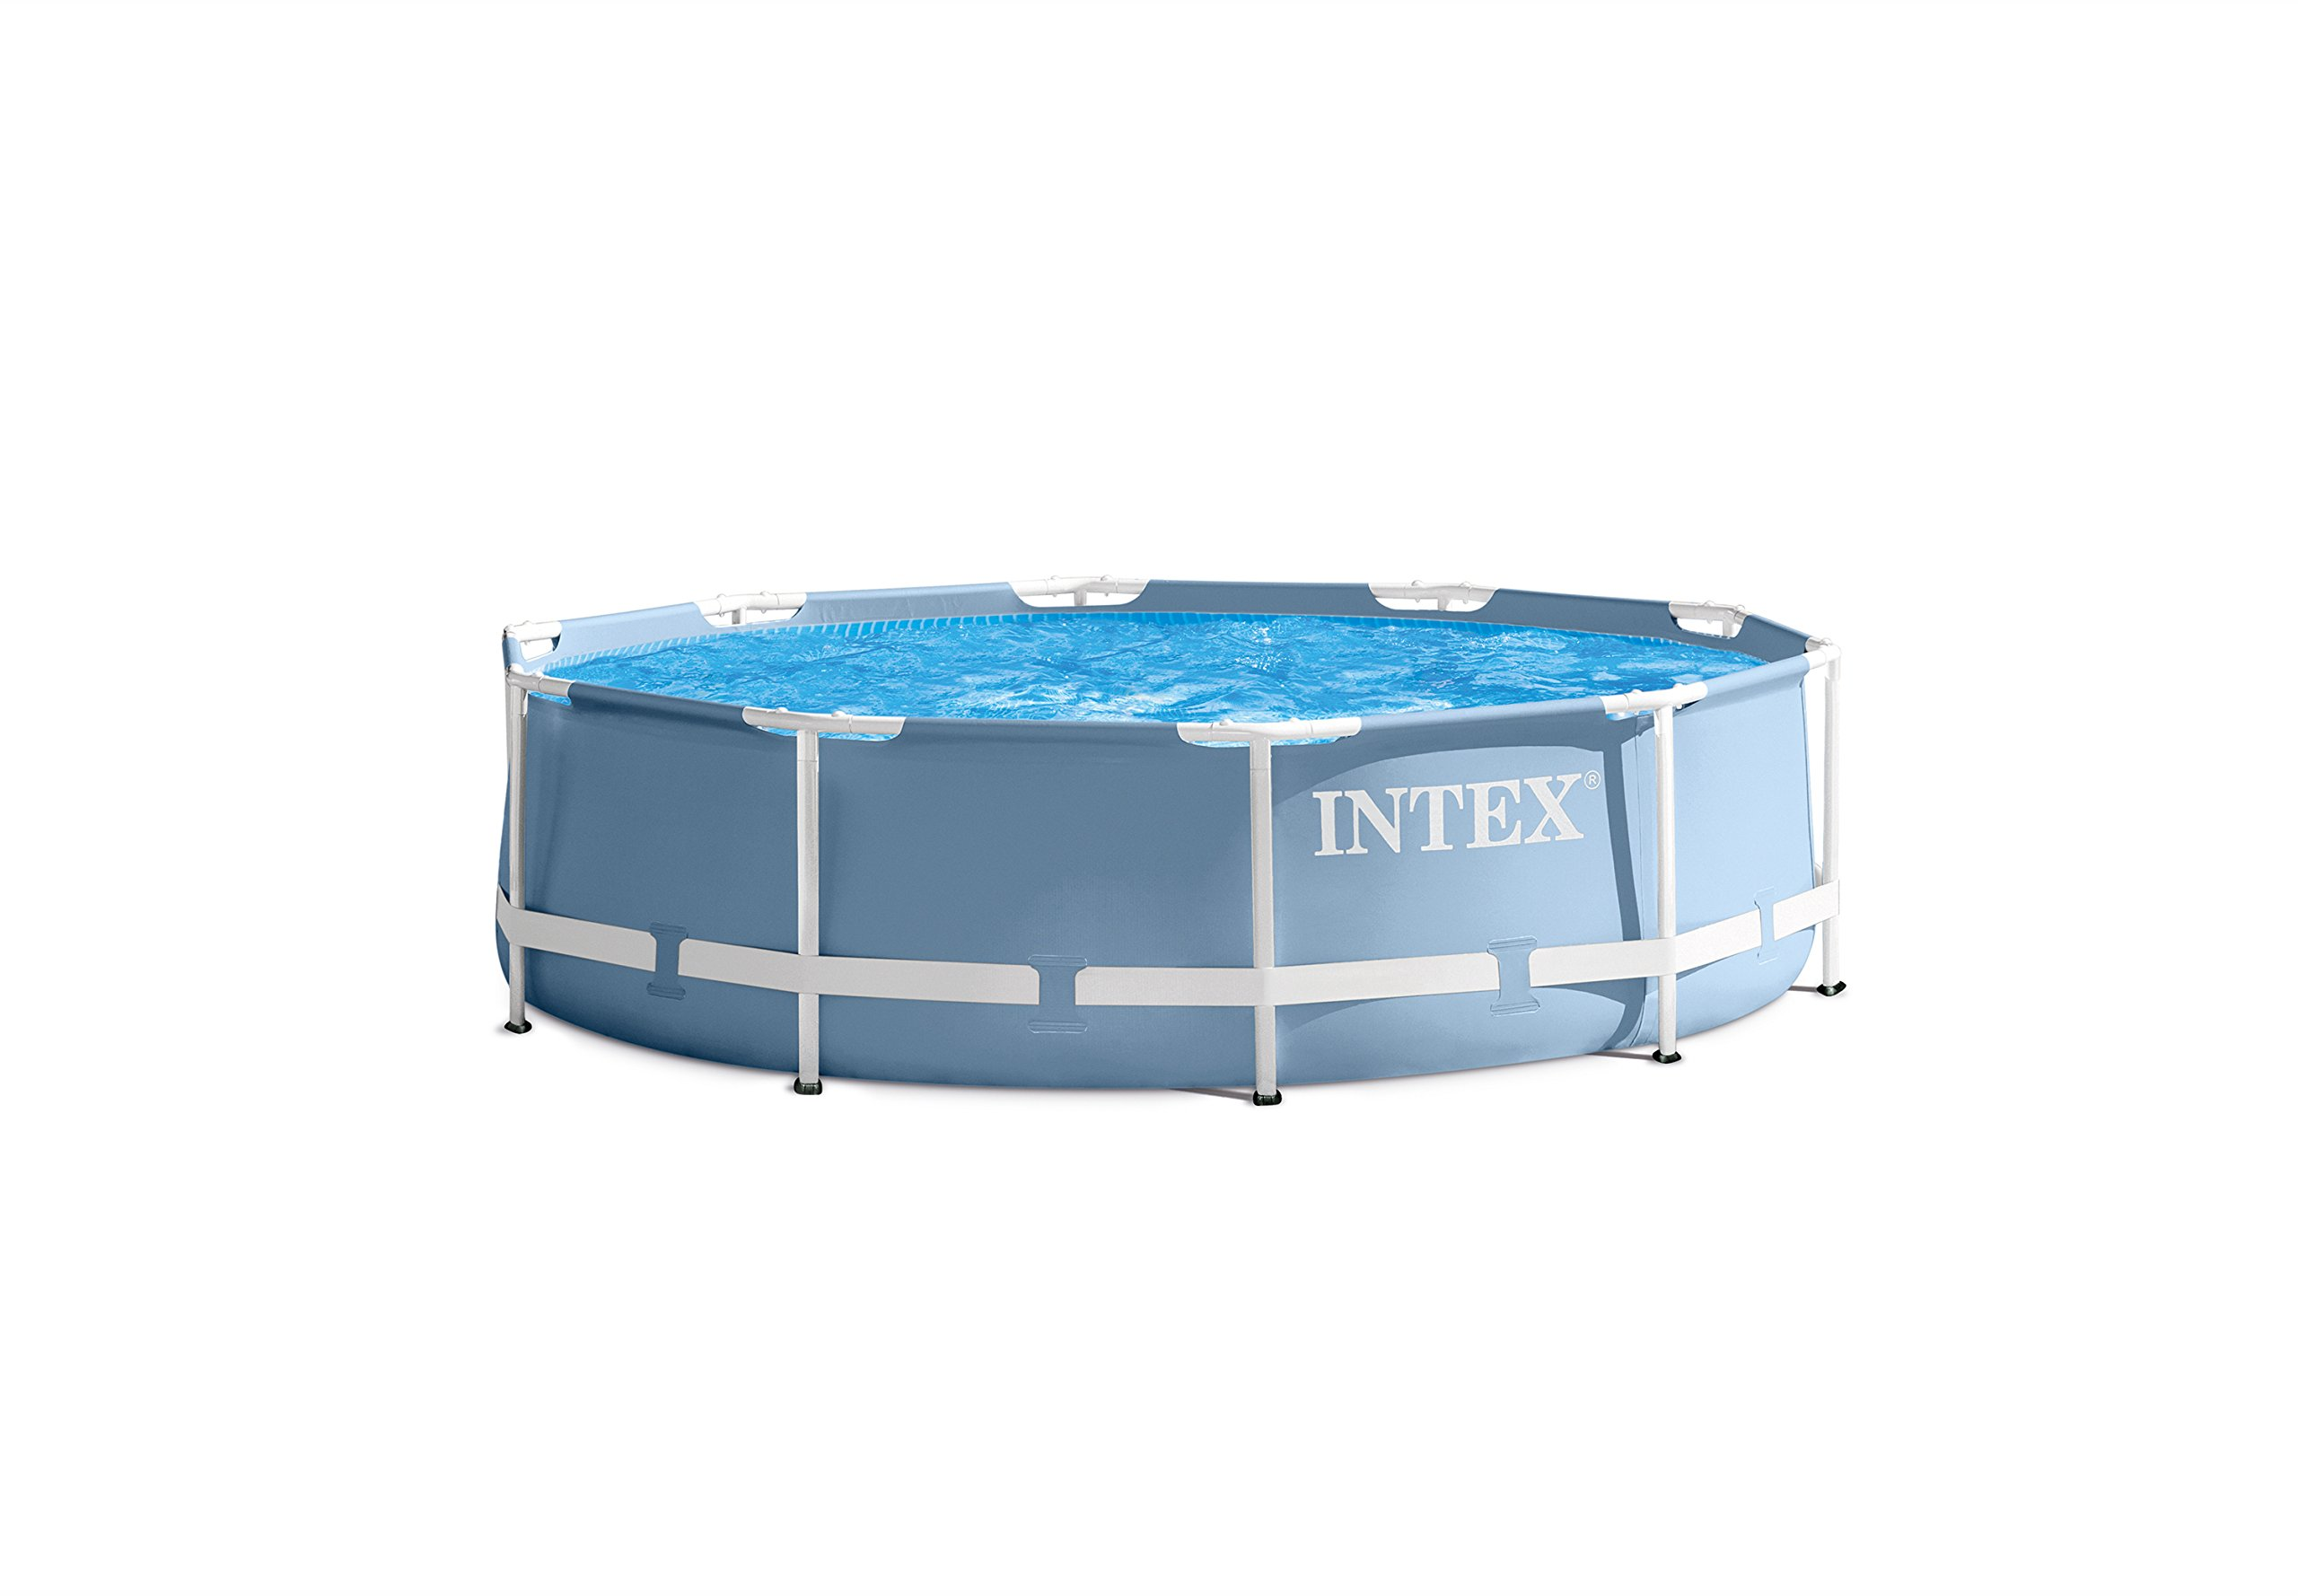 Intex 12ft X 30in Prism Frame Pool Set with Filter Pump by INTEX (Image #3)